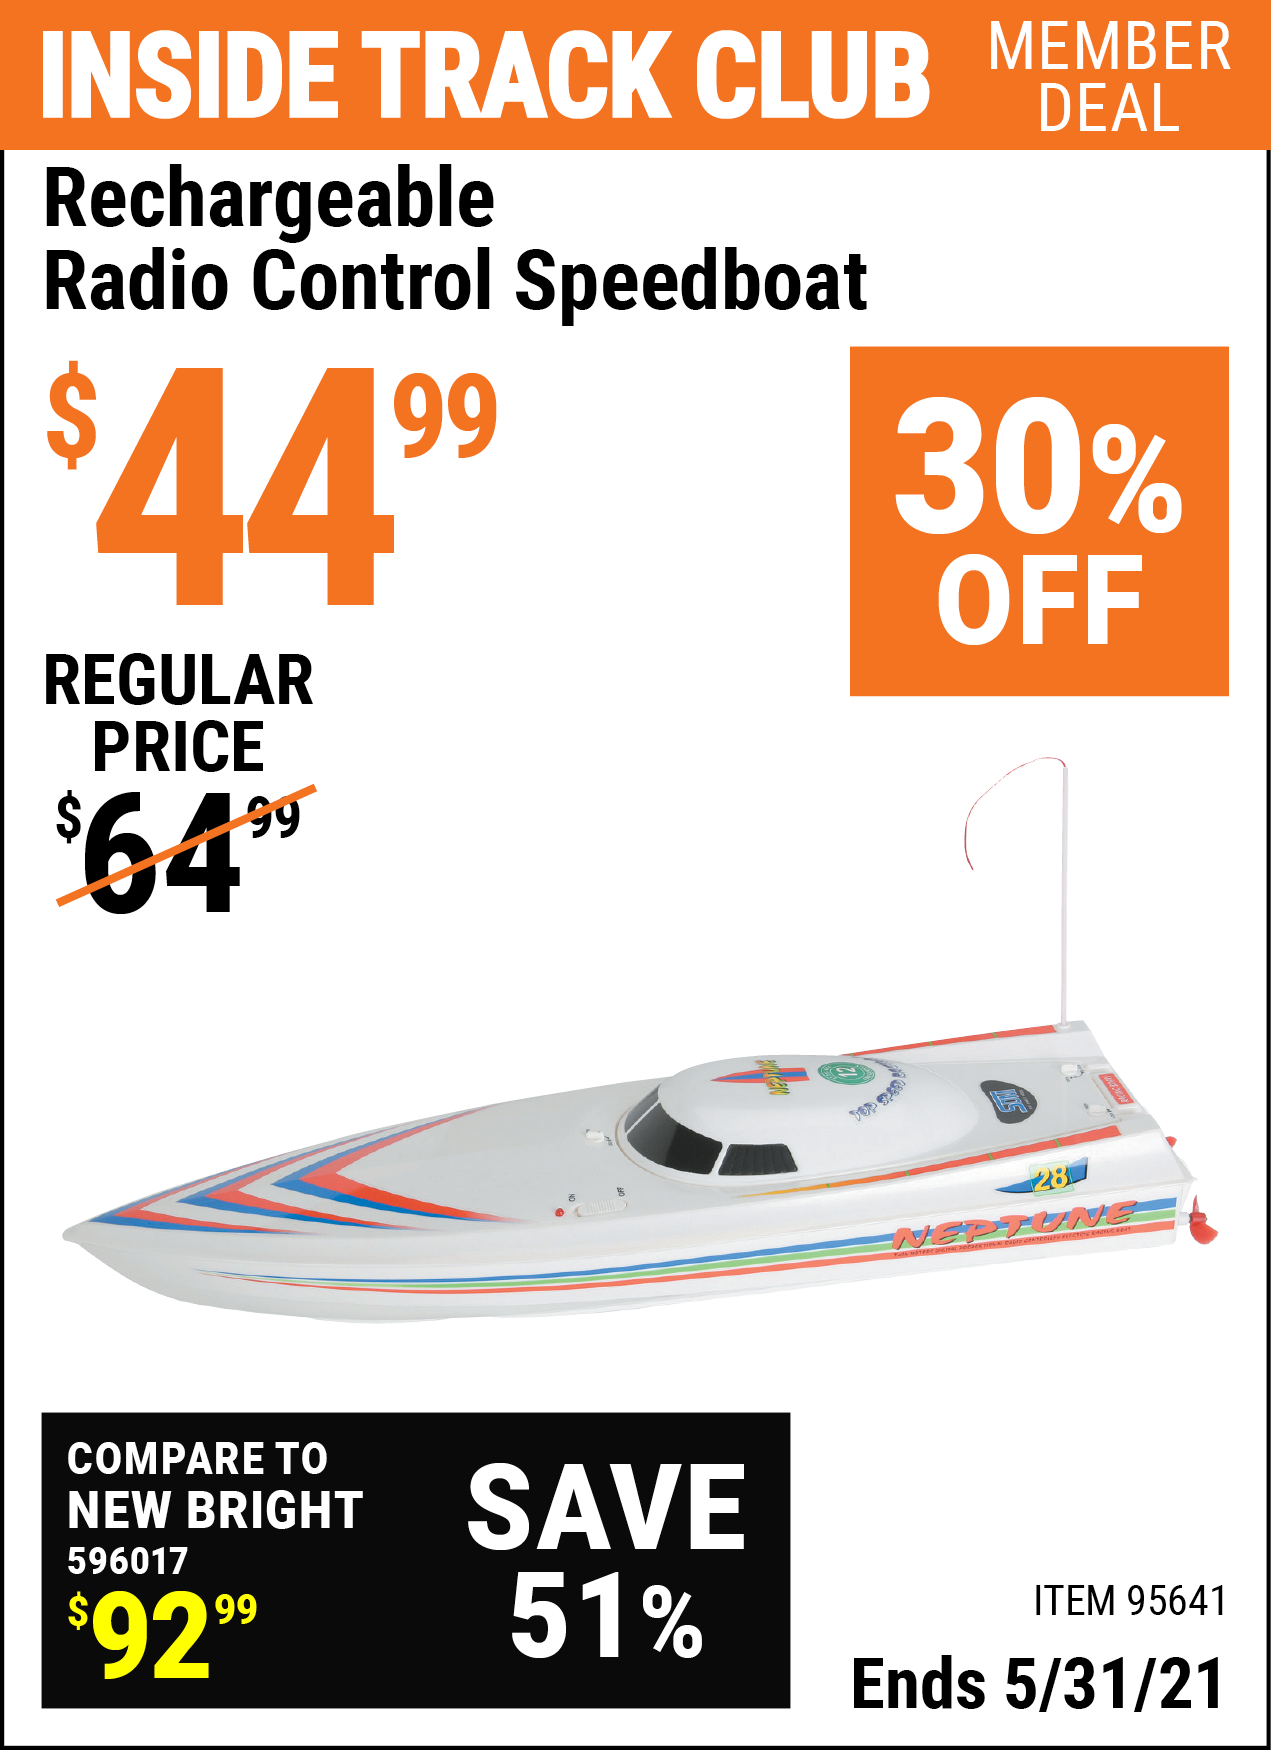 Inside Track Club members can buy the Rechargeable Radio Control Speedboat (Item 95641) for $44.99, valid through 5/31/2021.